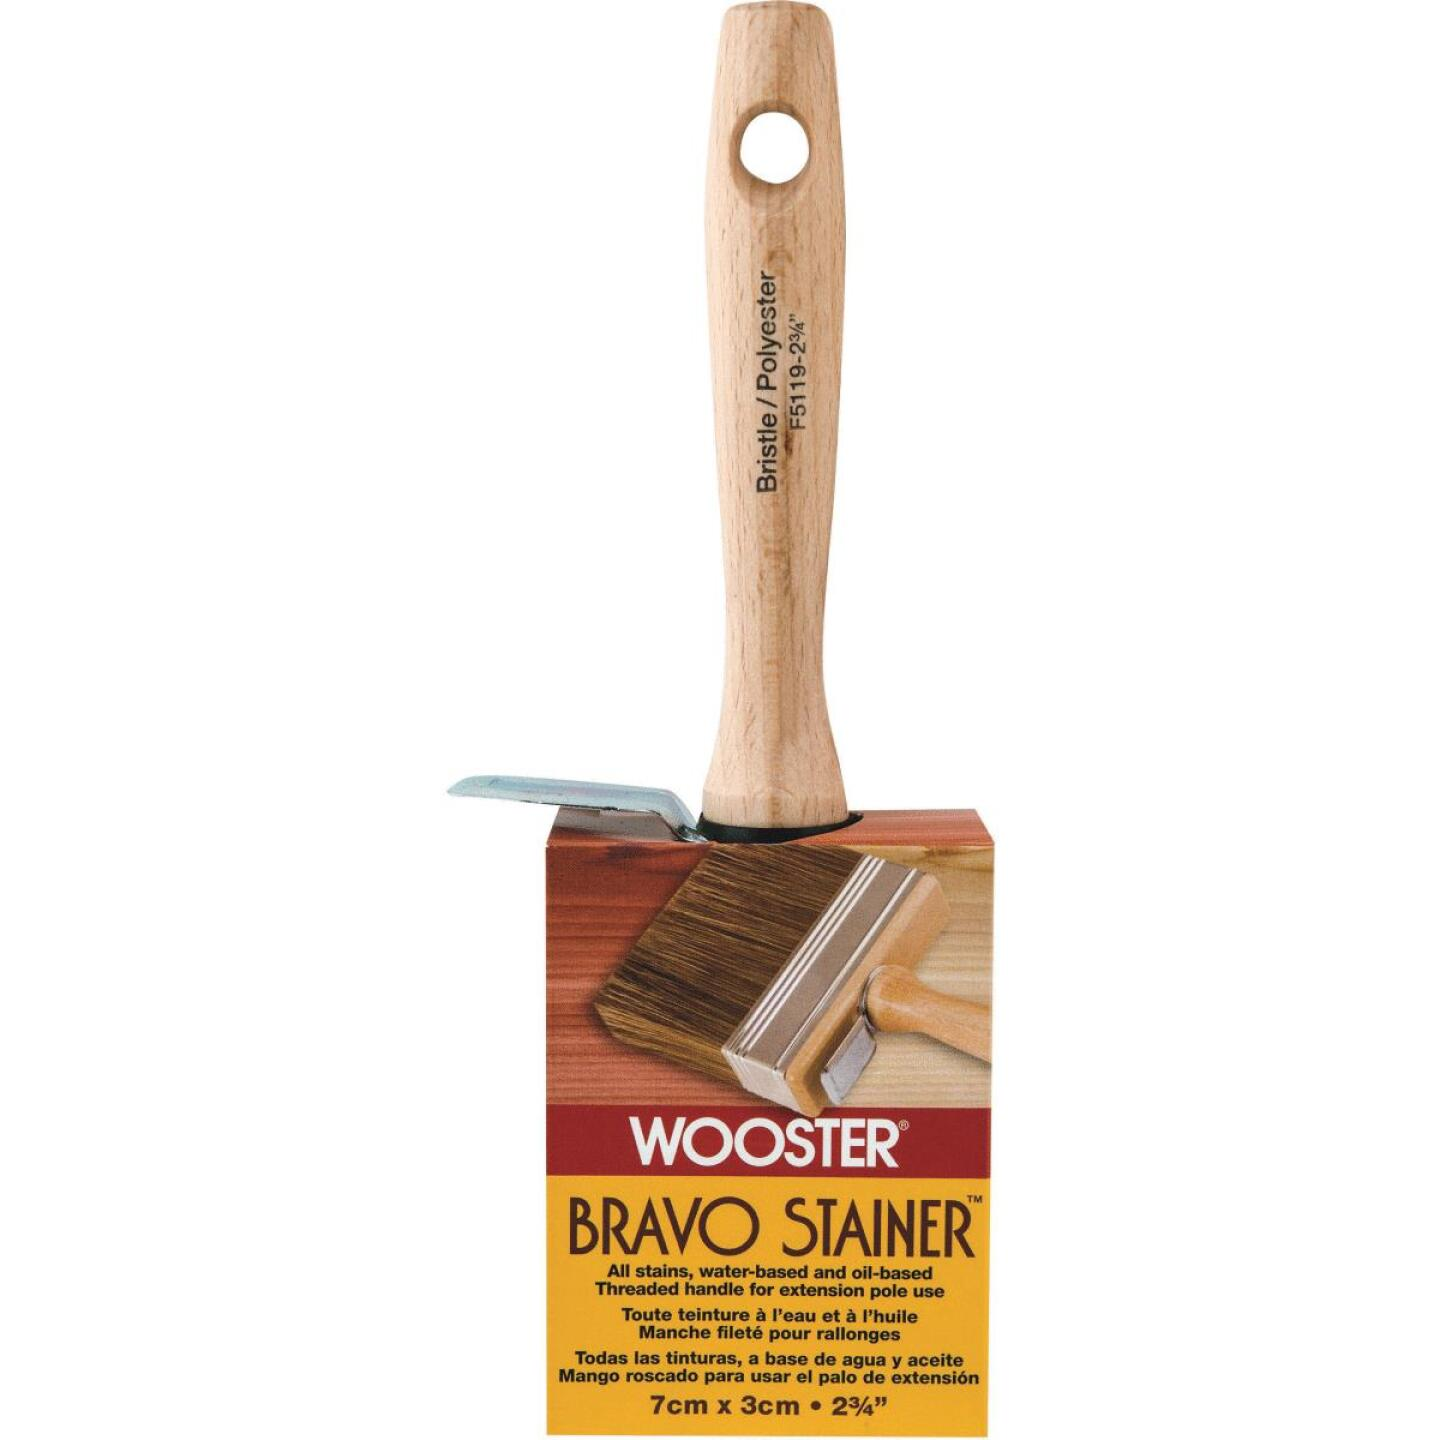 Wooster Bravo Stainer 2-3/4 In. Bristle Brush Image 1